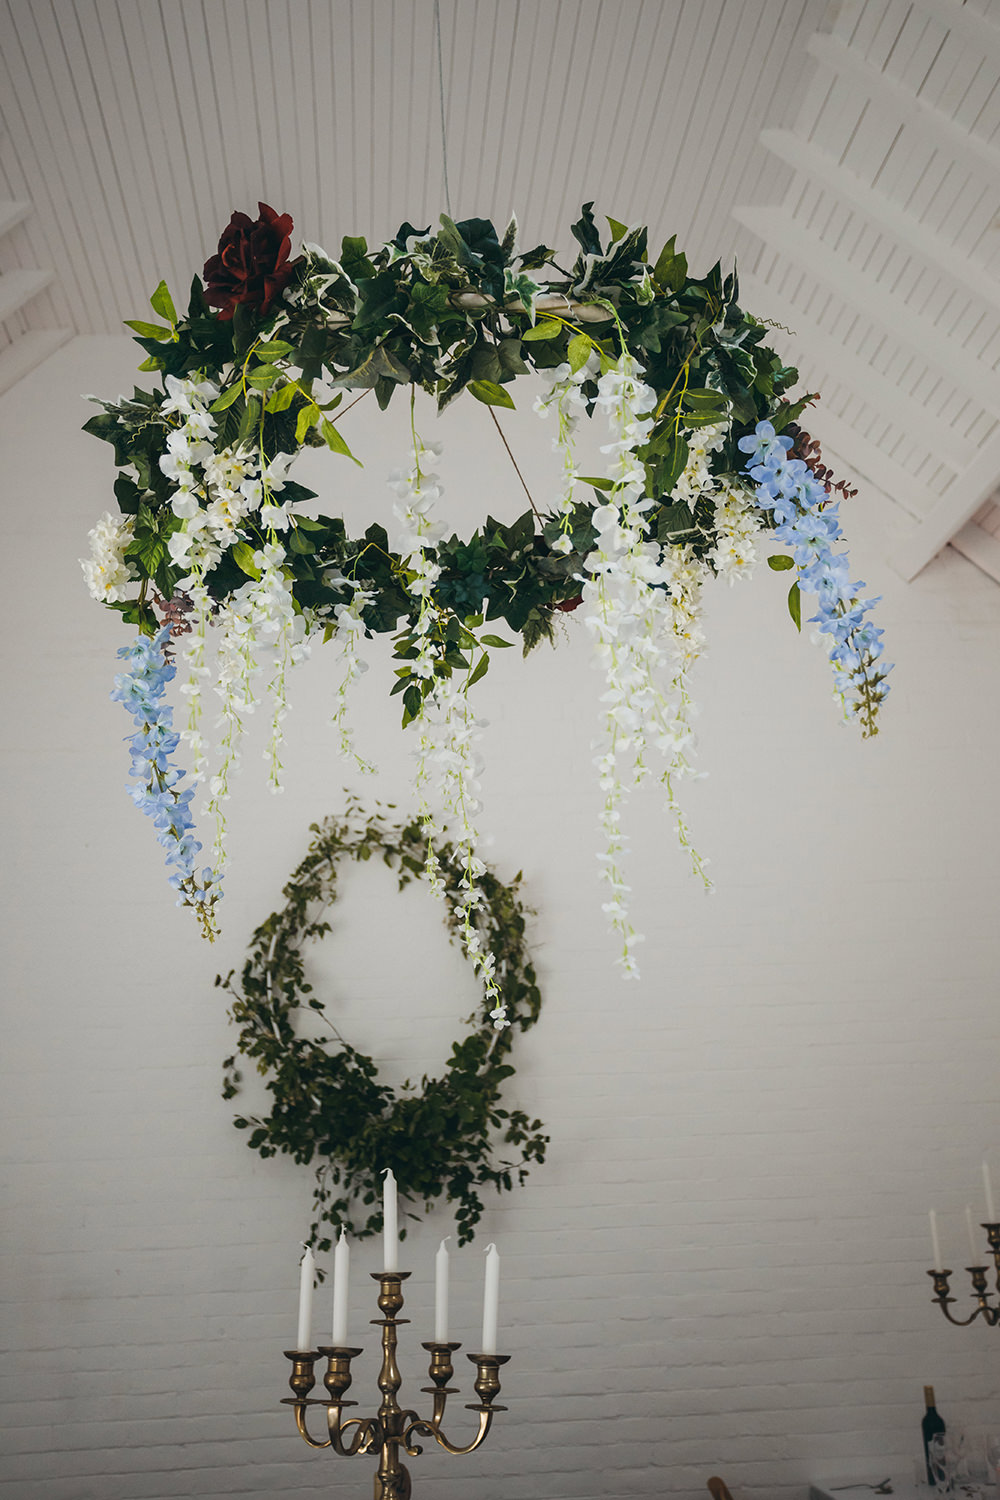 Hanging Suspended Flowers Florals Greenery Kingsettle Stud Wedding Mark Tattersall Photography